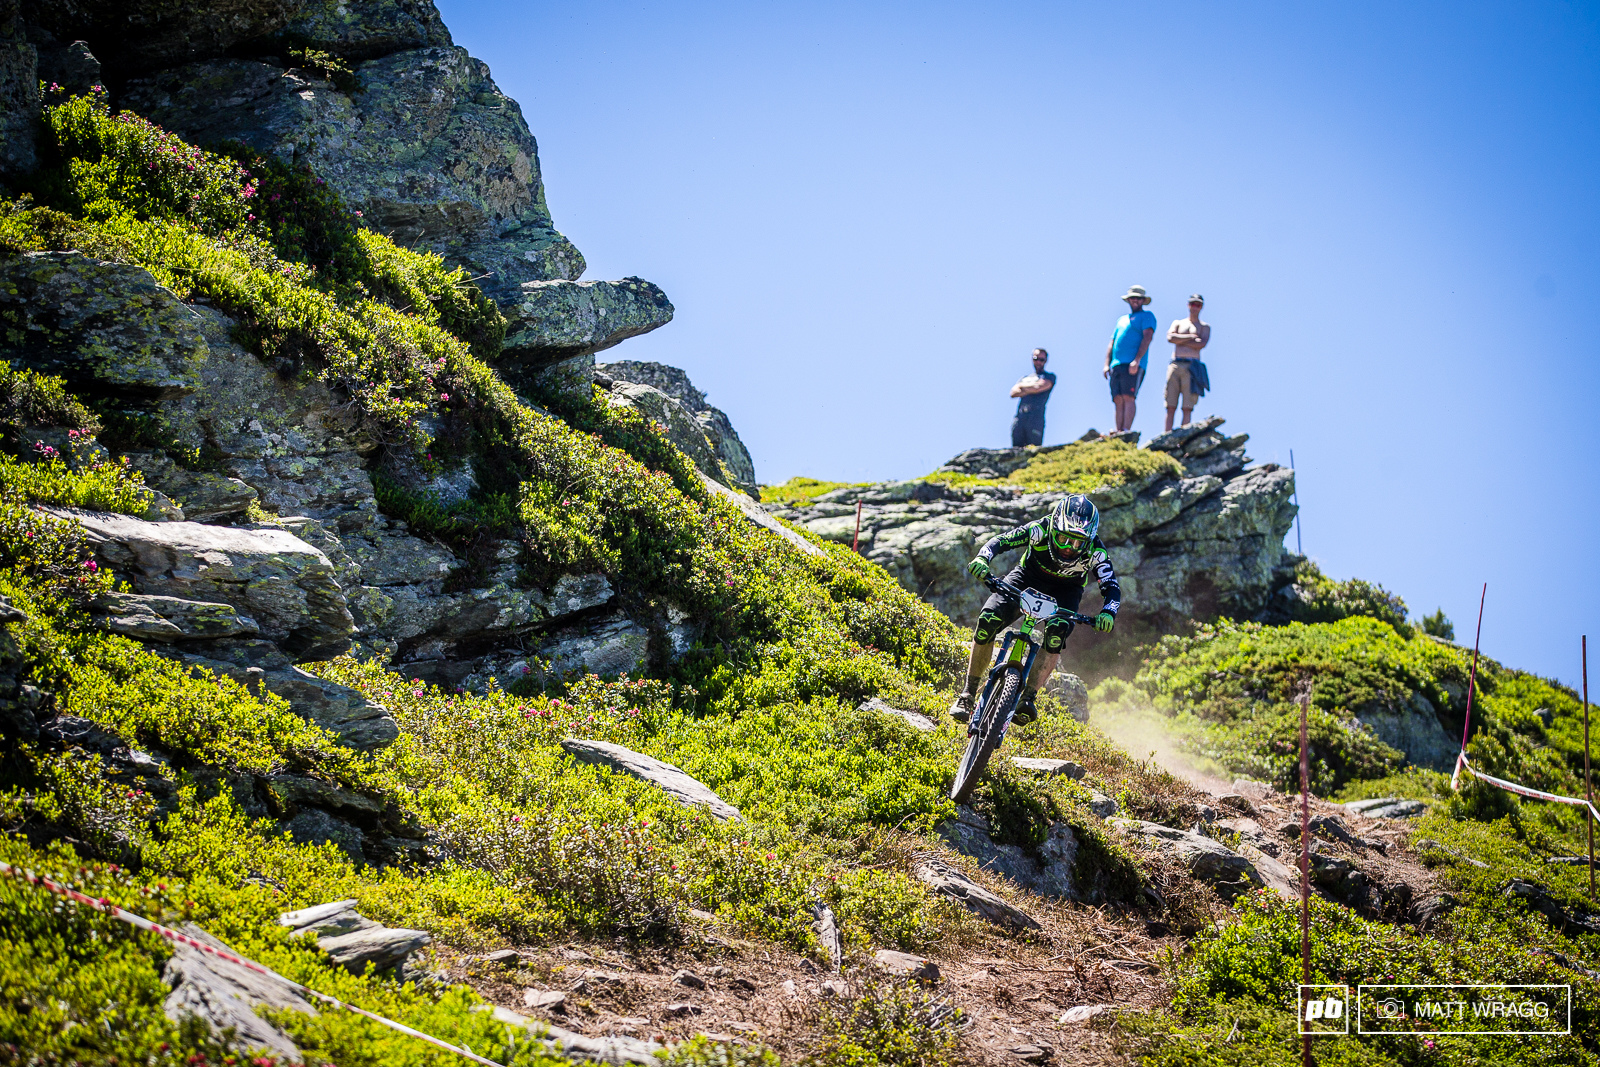 Jerome Clementz is still the master of reading the terrain - few other riders spotted this high line that kept him out of the chattery rocks below. Ninth this weekend for the 2012 champion.